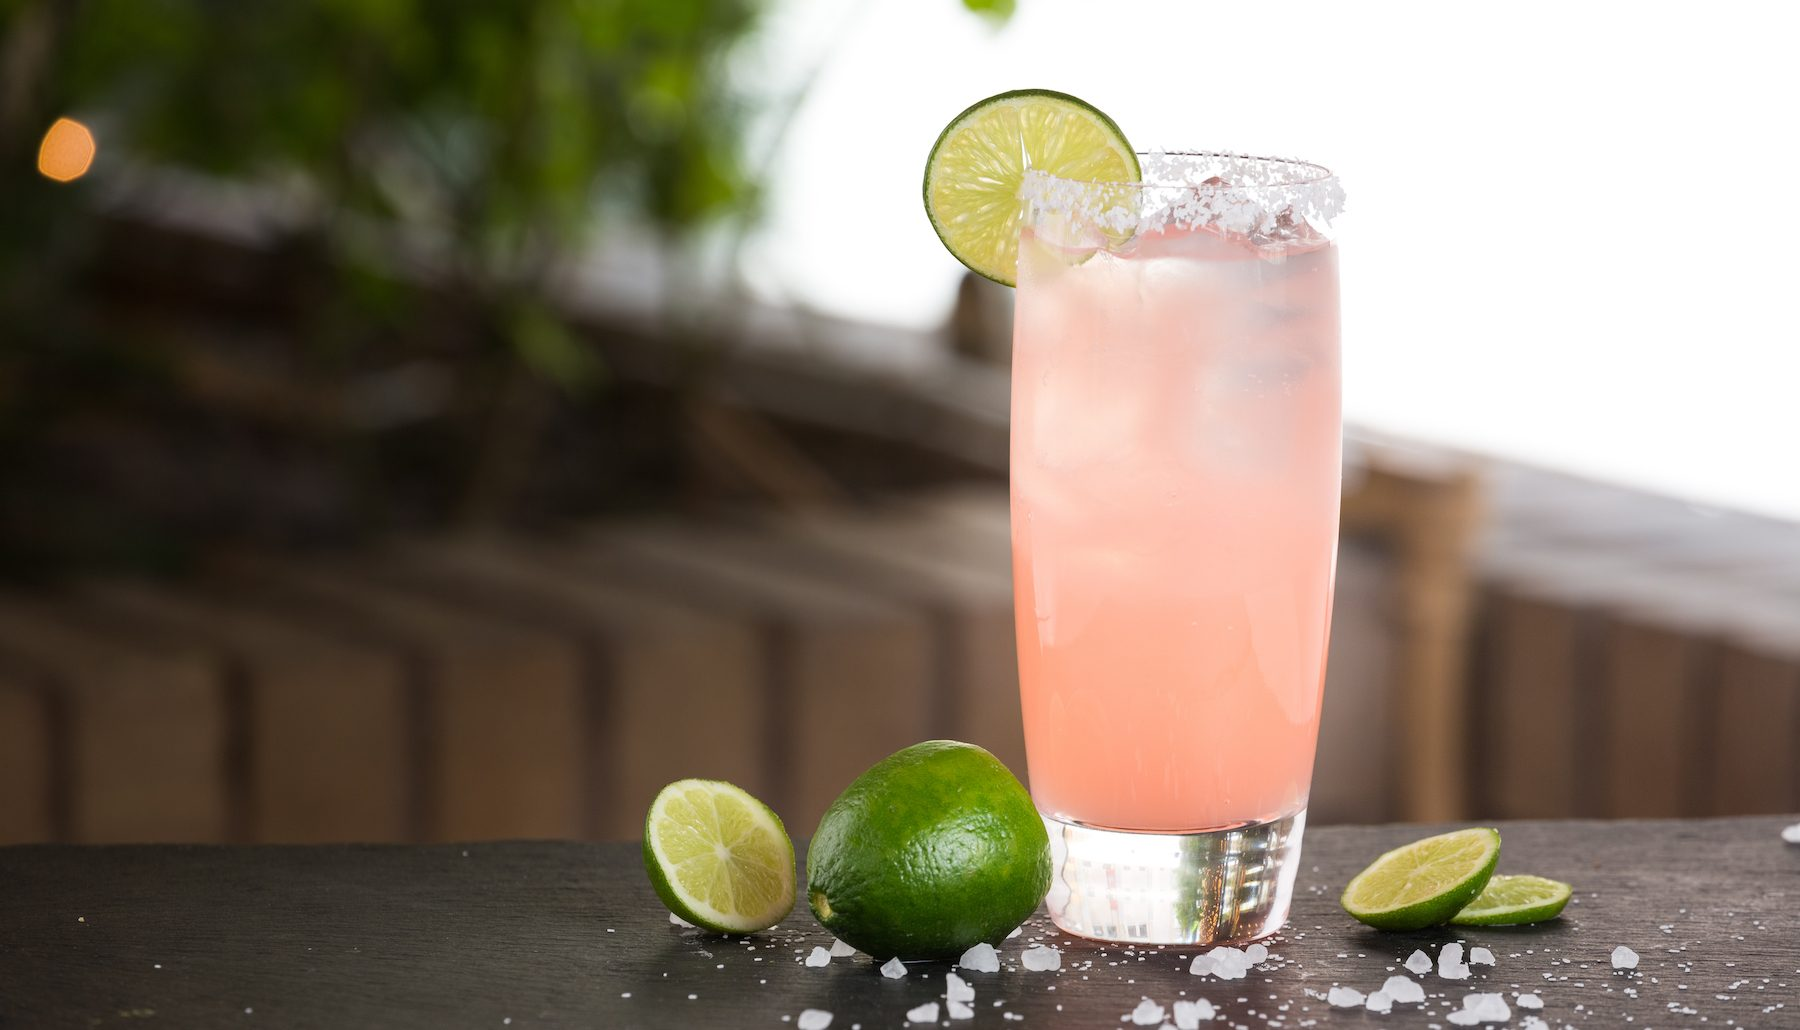 Paloma - A Tequila cocktail